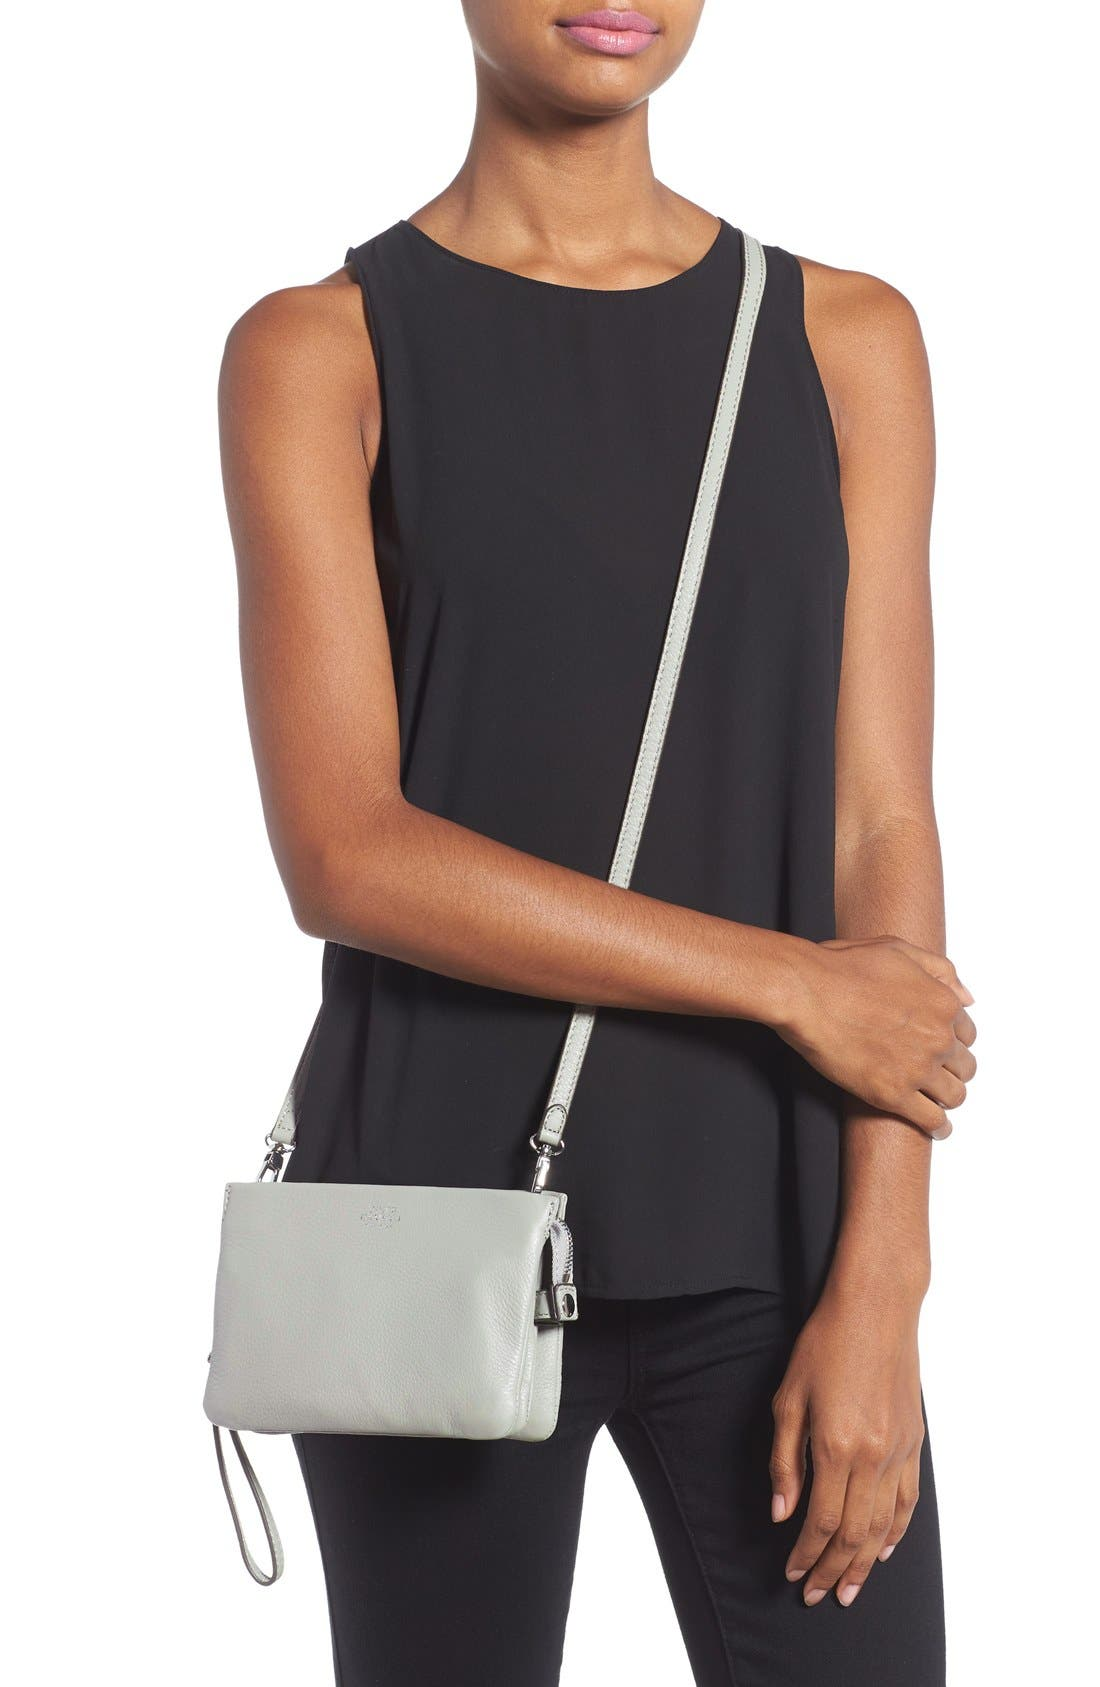 'Cami' Leather Crossbody Bag,                             Alternate thumbnail 41, color,